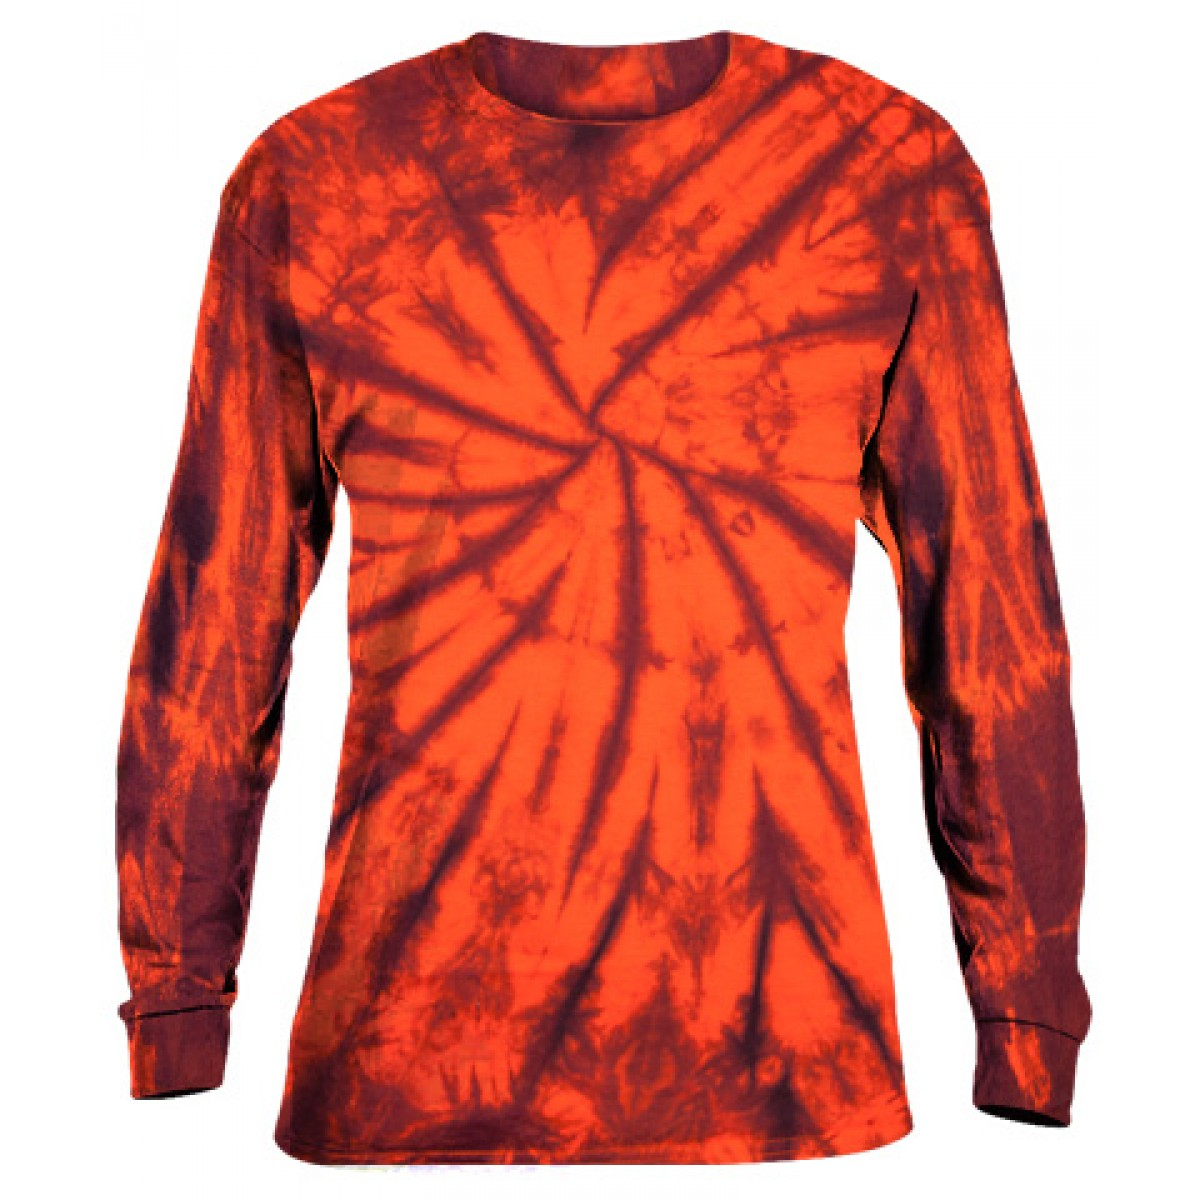 Tie-Dye Long Sleeve Shirt -Fall Orange -XL